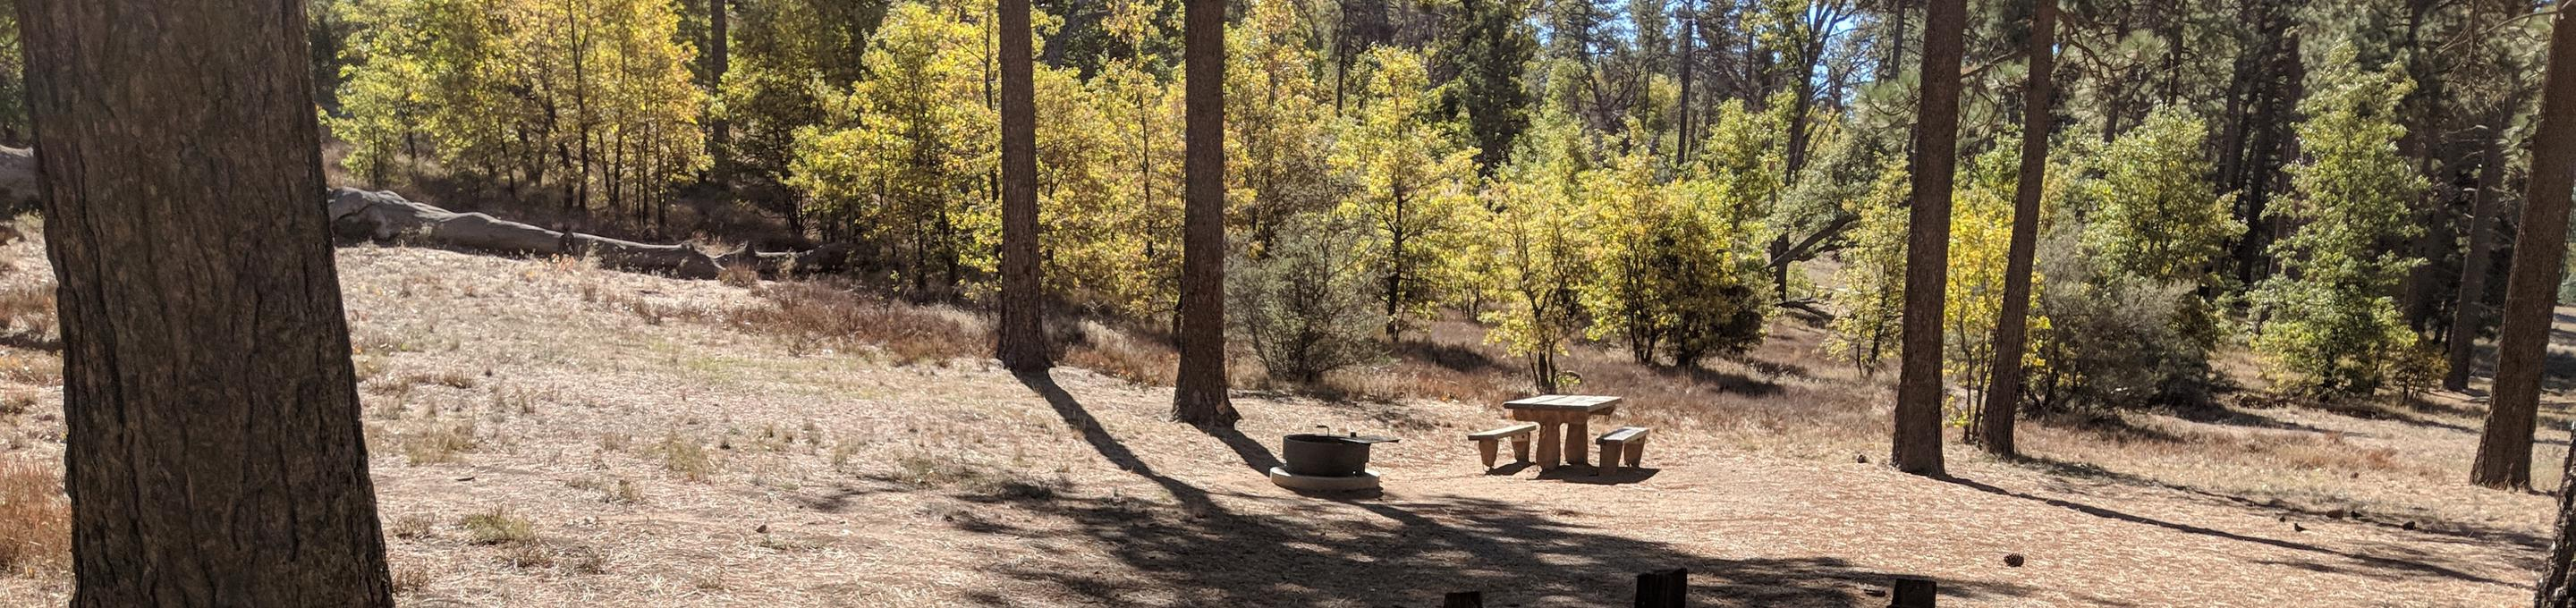 Laguna Campground site #18 wooded camping space view and picnic area.